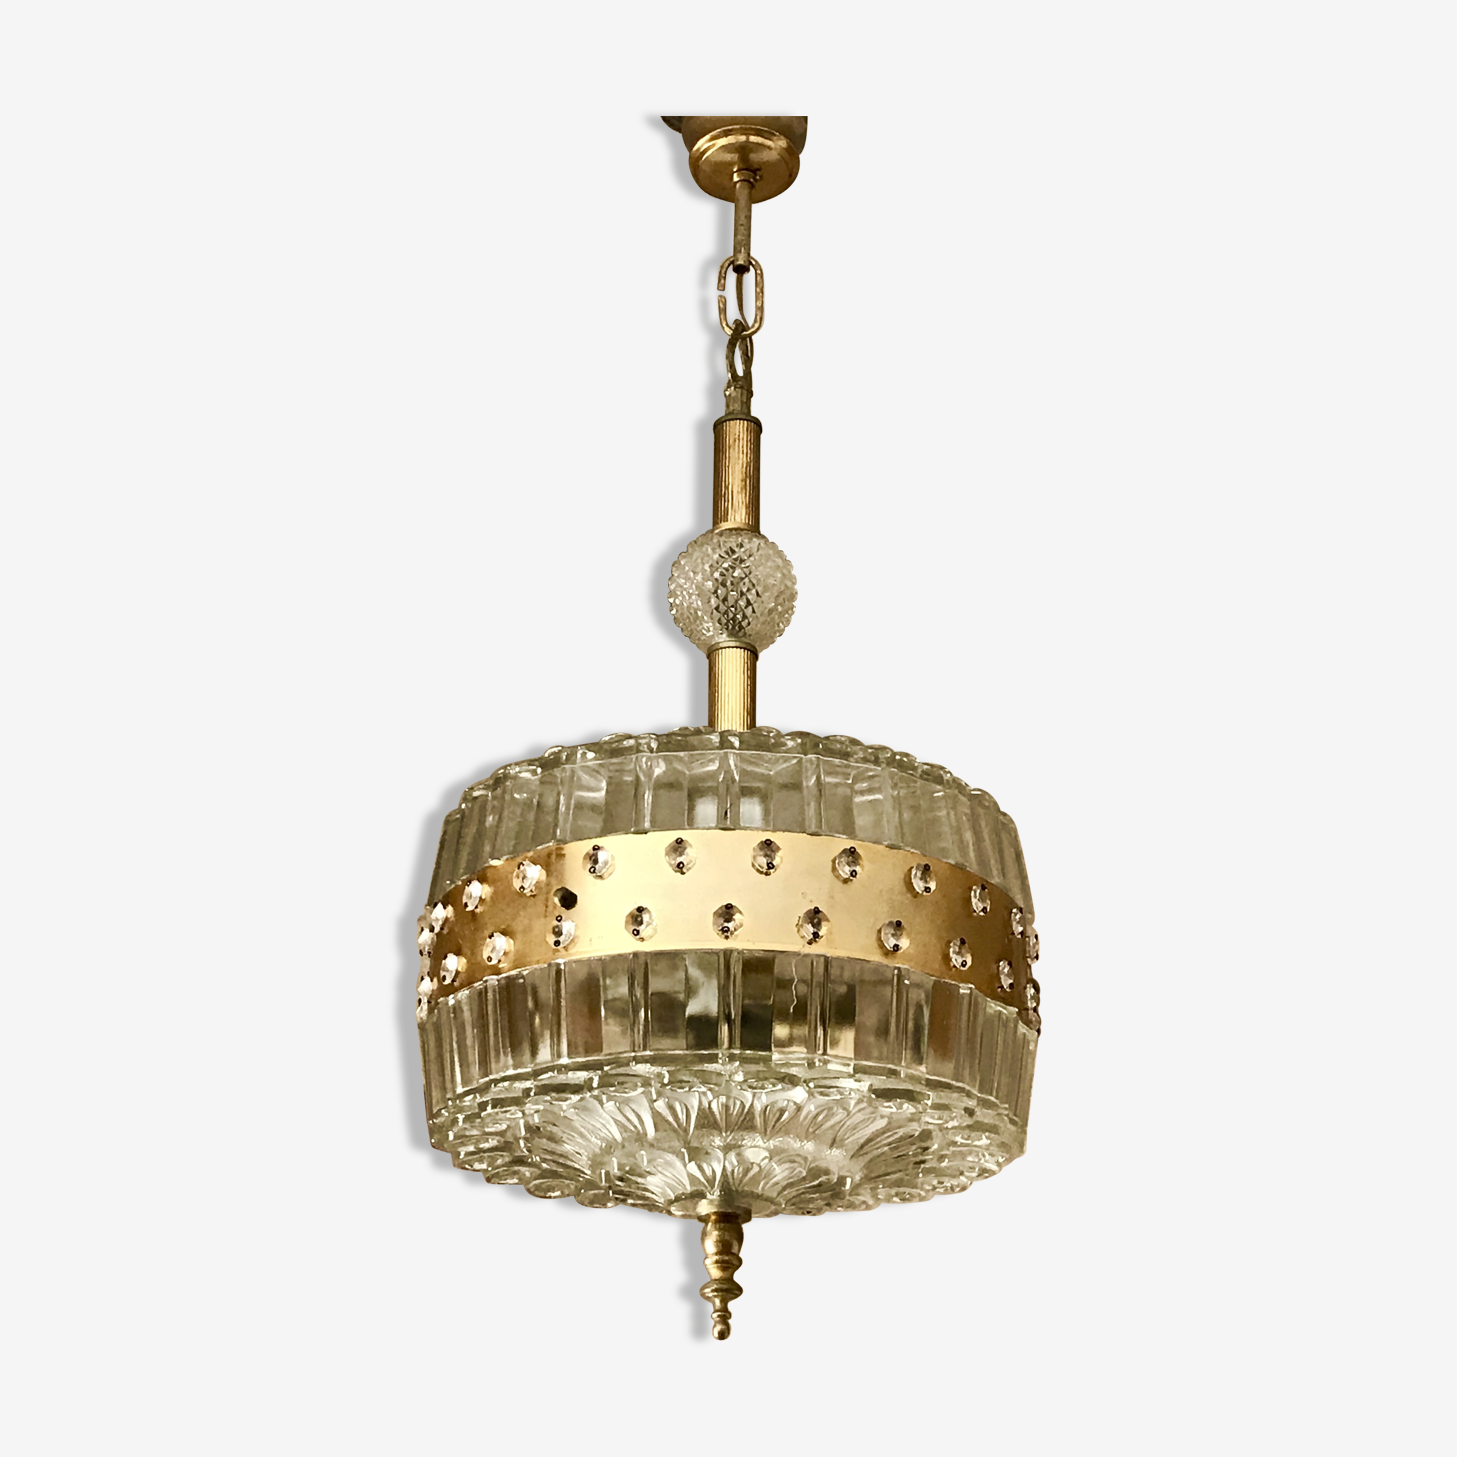 Hanging lamp by Carl Fagerlund 1960